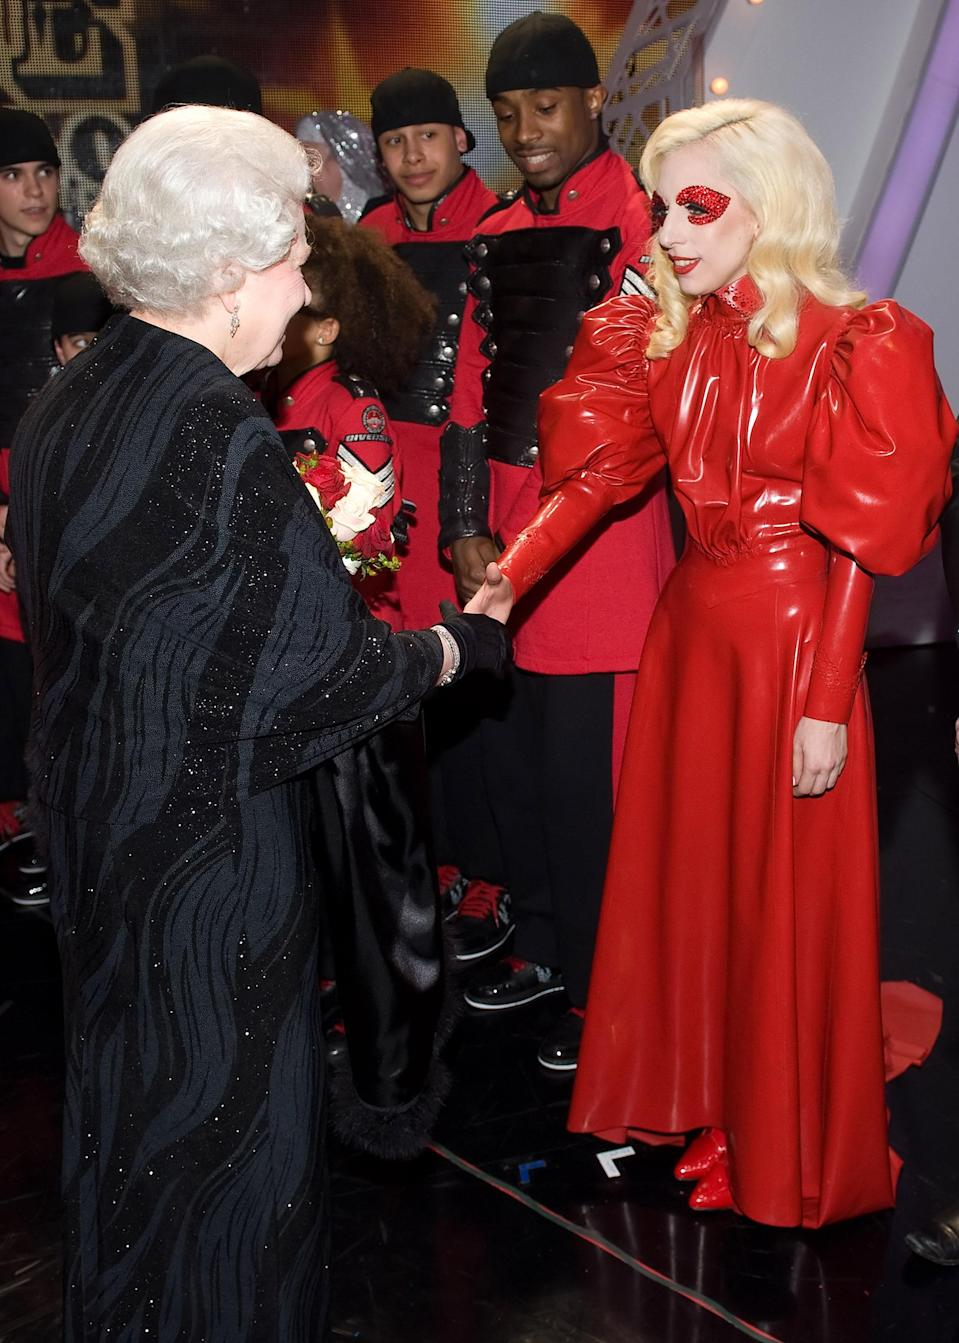 Only Gaga could wear <em>this</em> to meet the Queen of England.